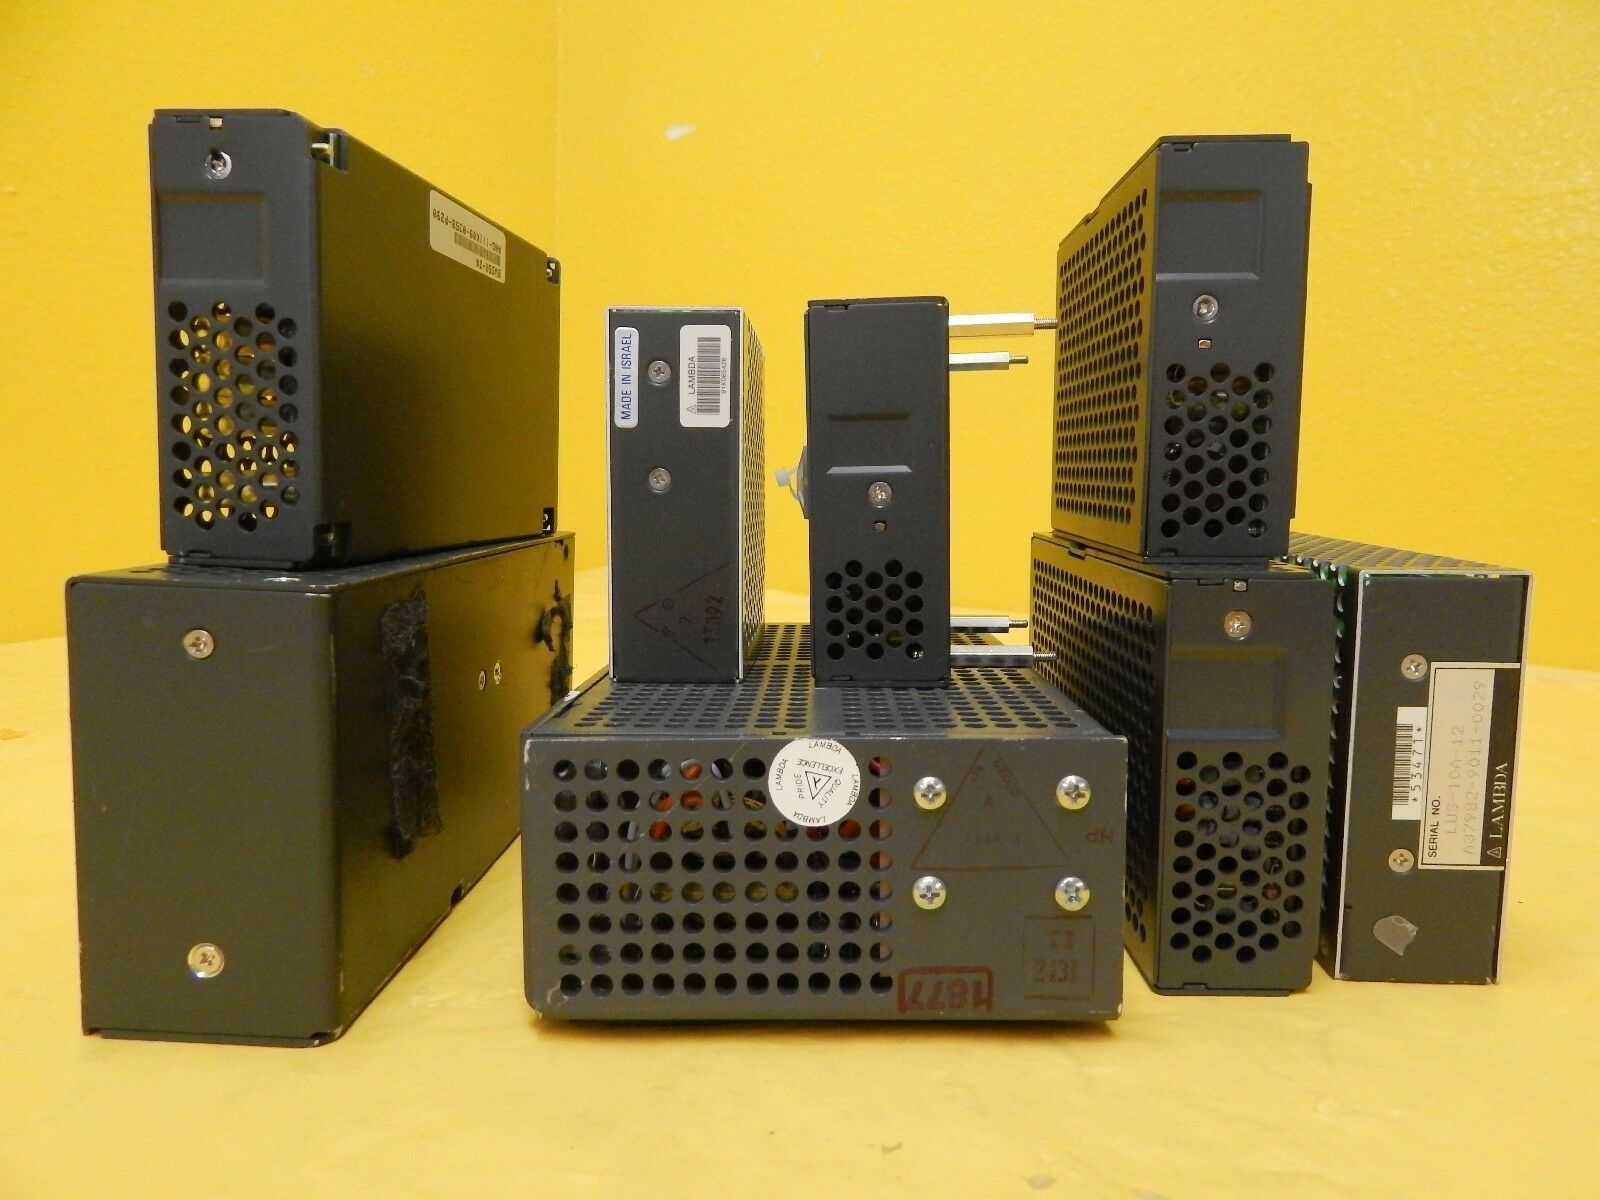 Nemic-Lambda EWS LUS Series Compact Power Supply Reseller Lot of 8 Used Working